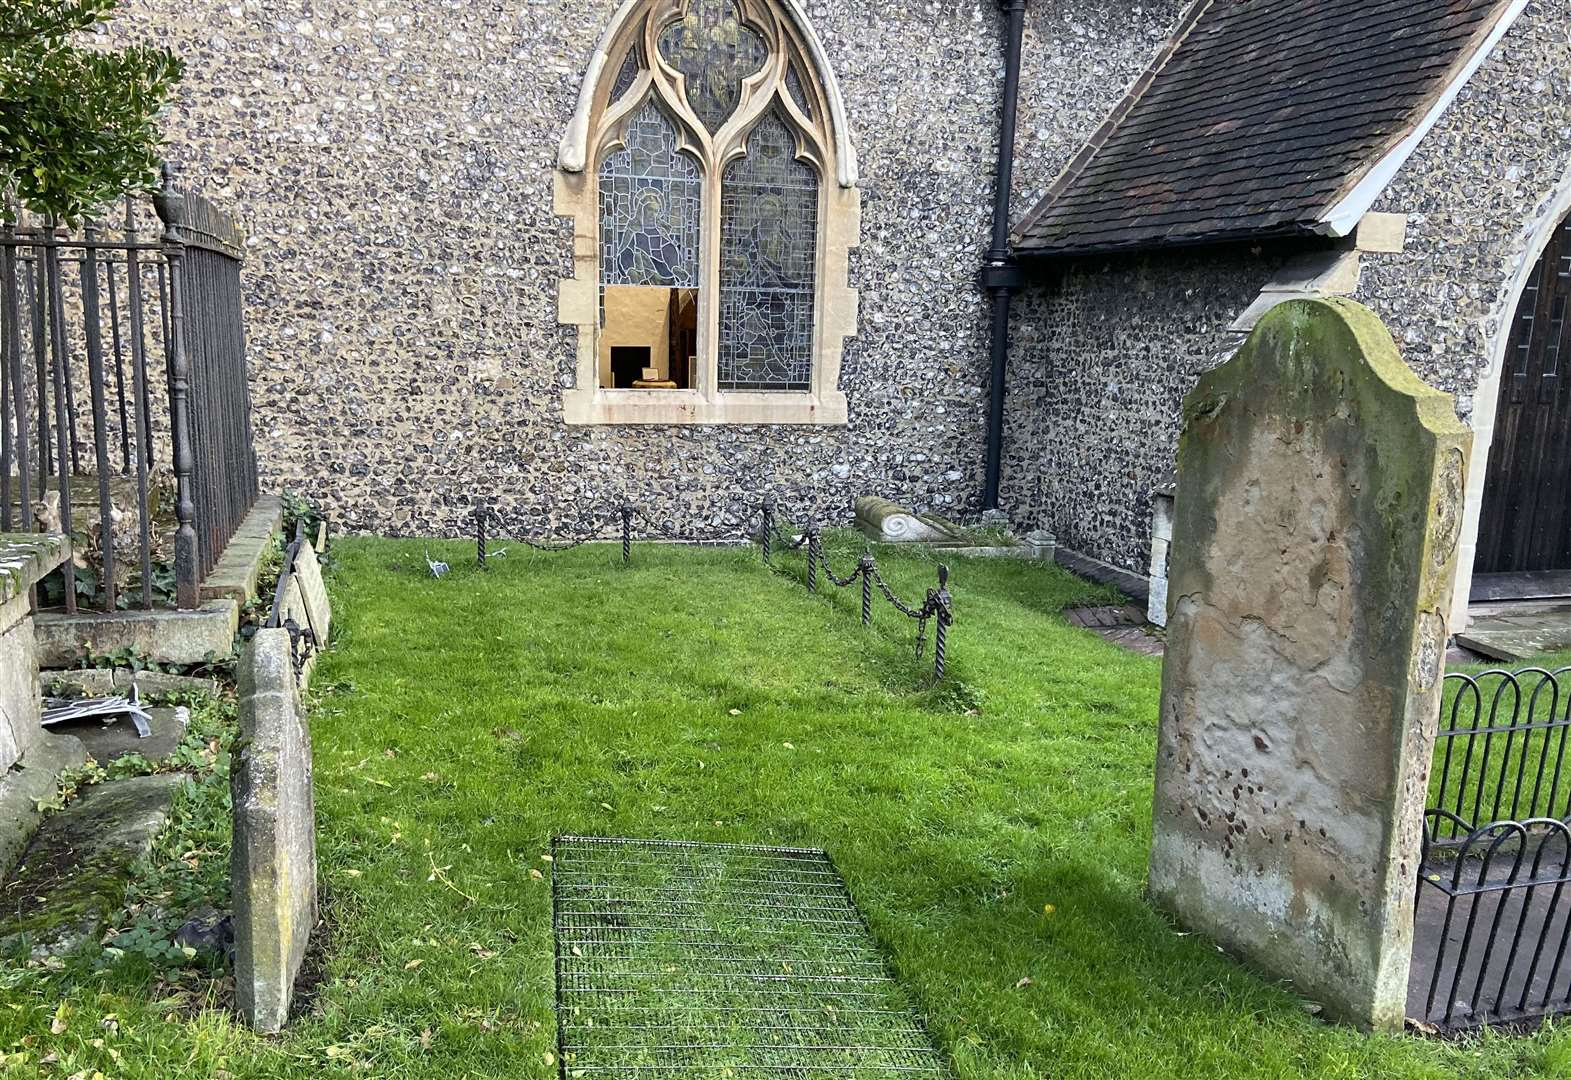 Almost £2,000 raised for vandalised church